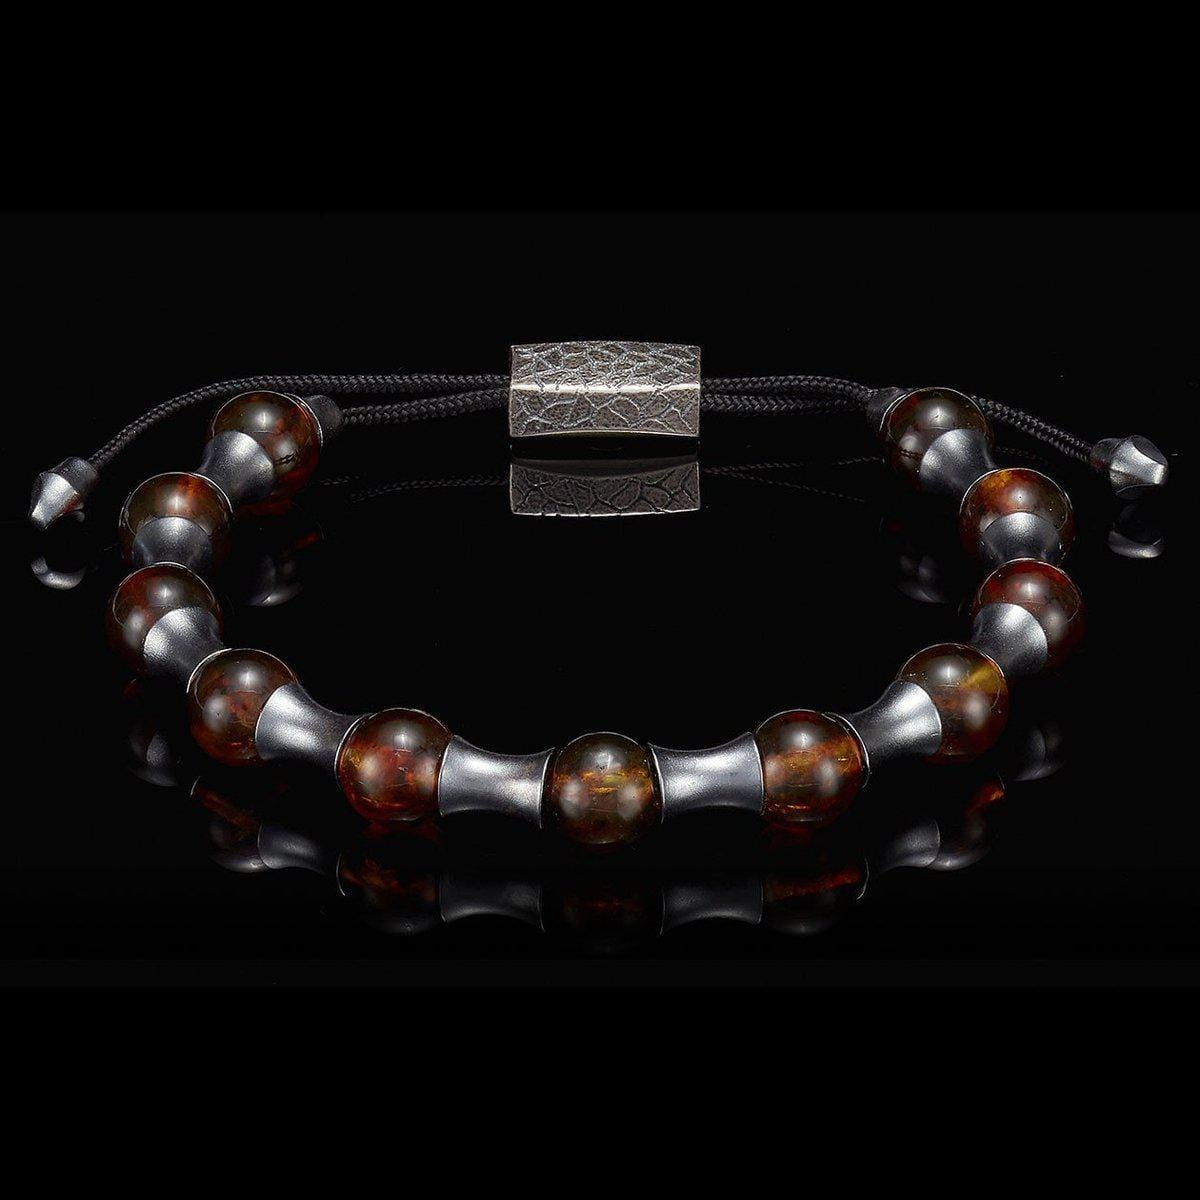 Men's Amber Zenith Bracelet - BB19 AMB-William Henry-Renee Taylor Gallery